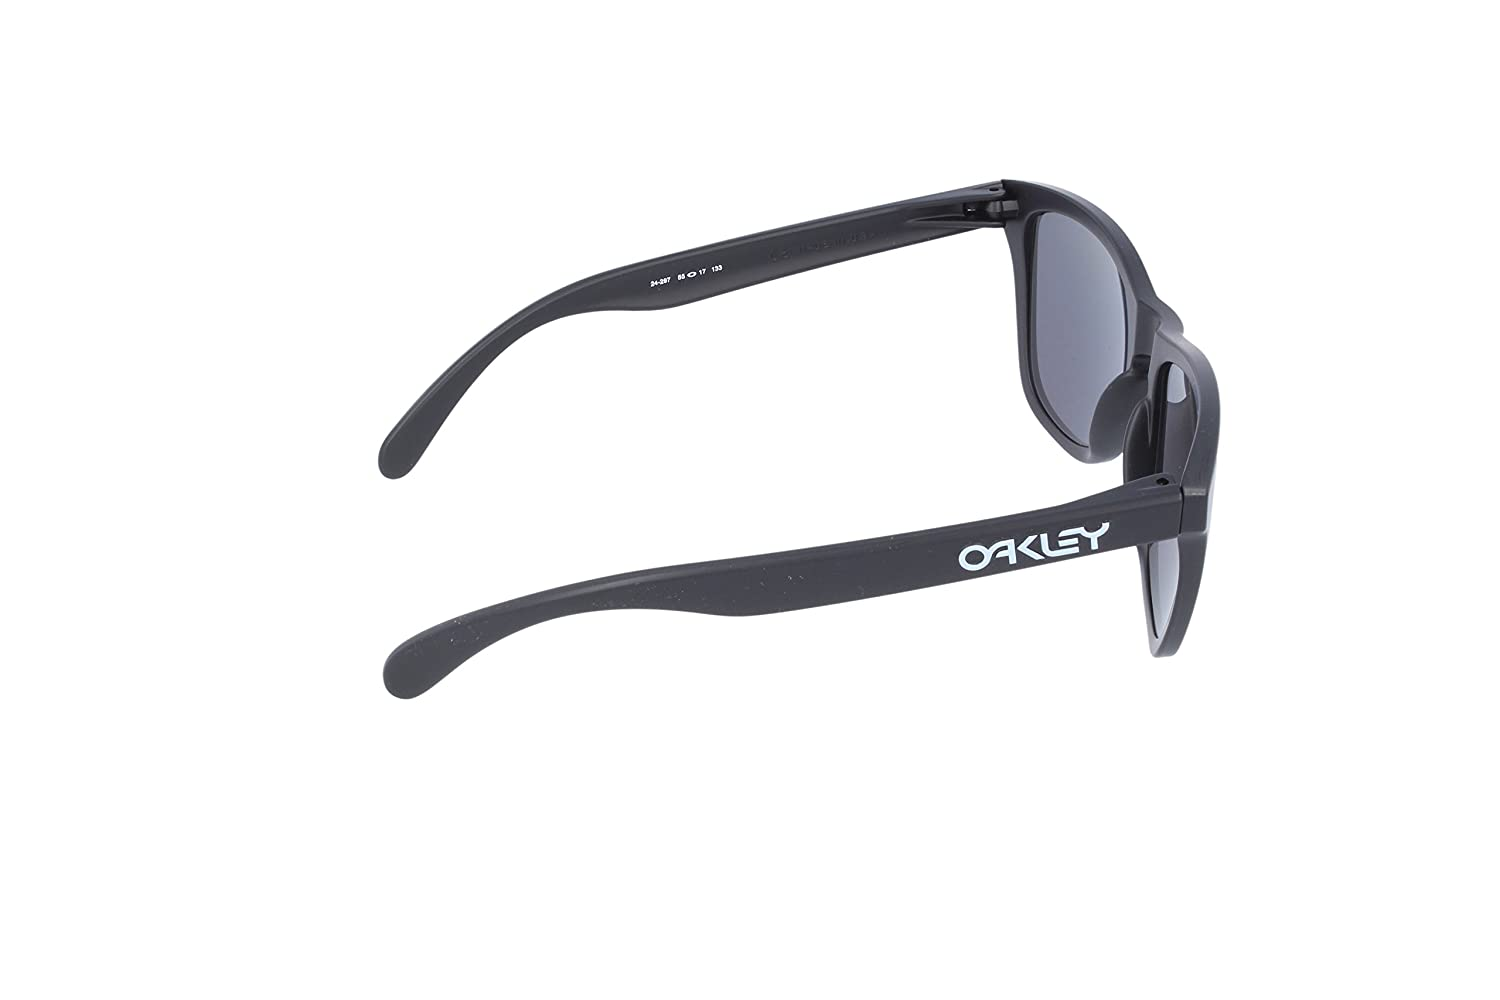 f00bb3e7f01ed Oakley Mens Frogskins 24-297 Polarized Cat Eye Sunglasses